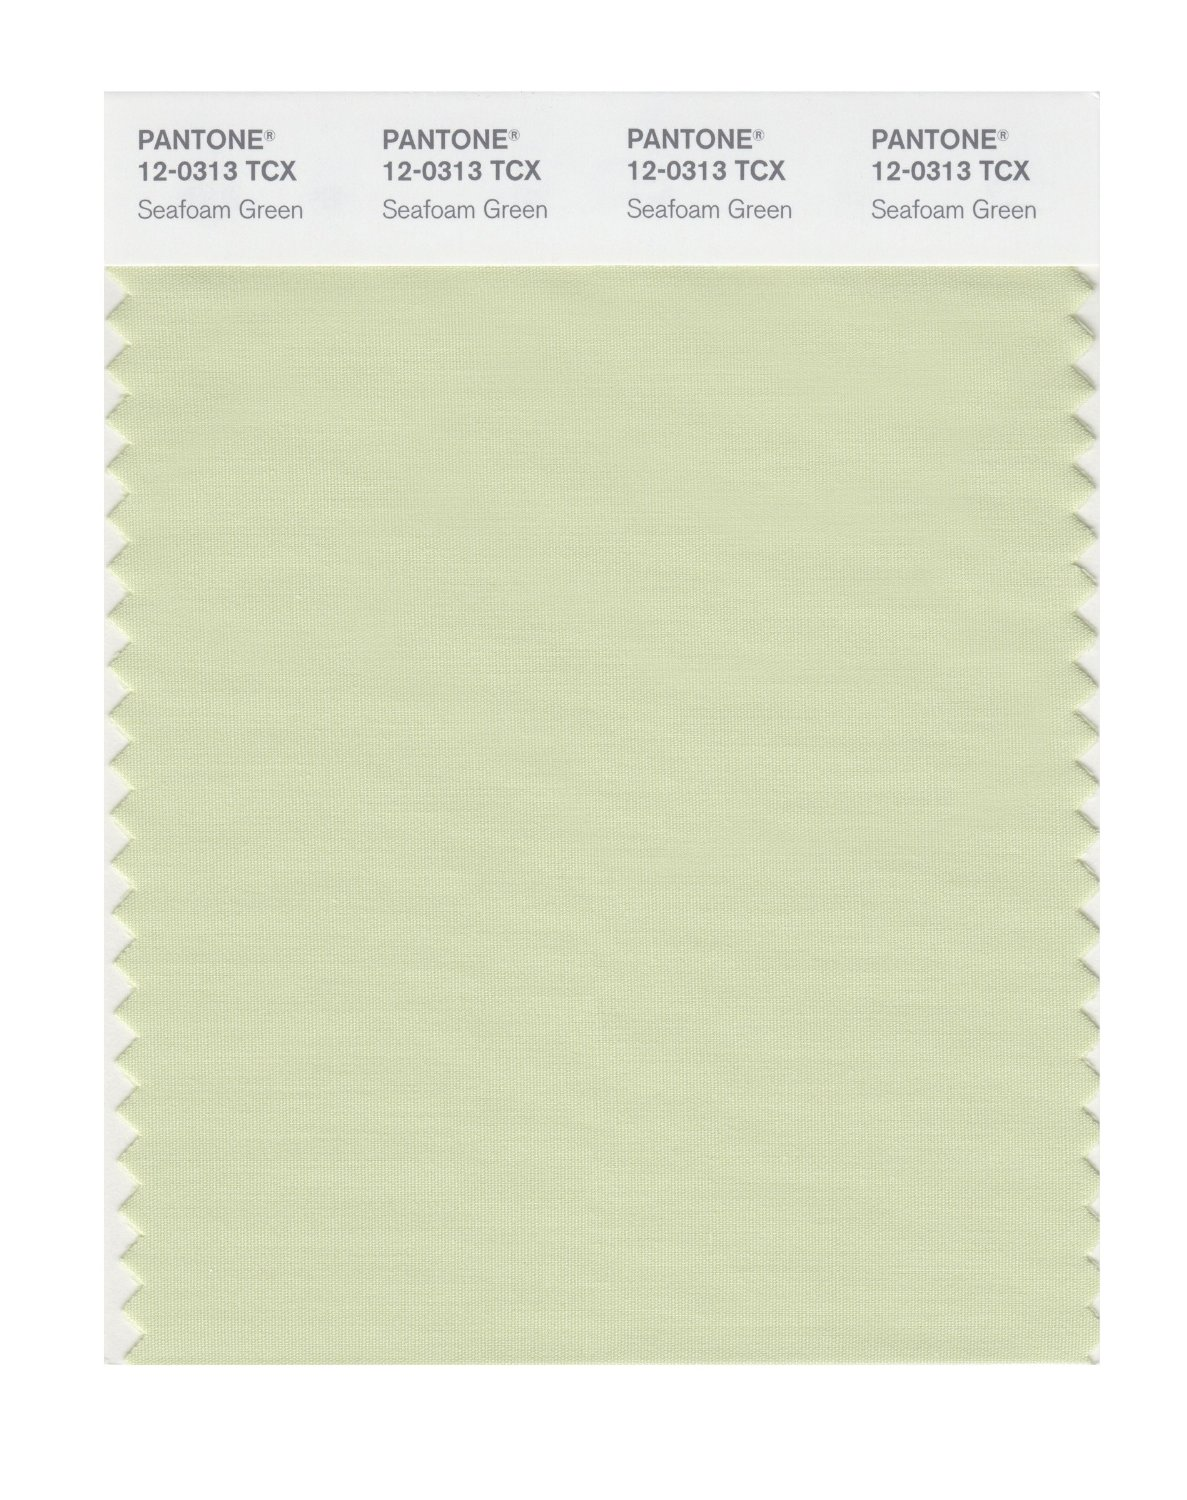 Pantone Smart Swatch 12-0313 Seafoam Green